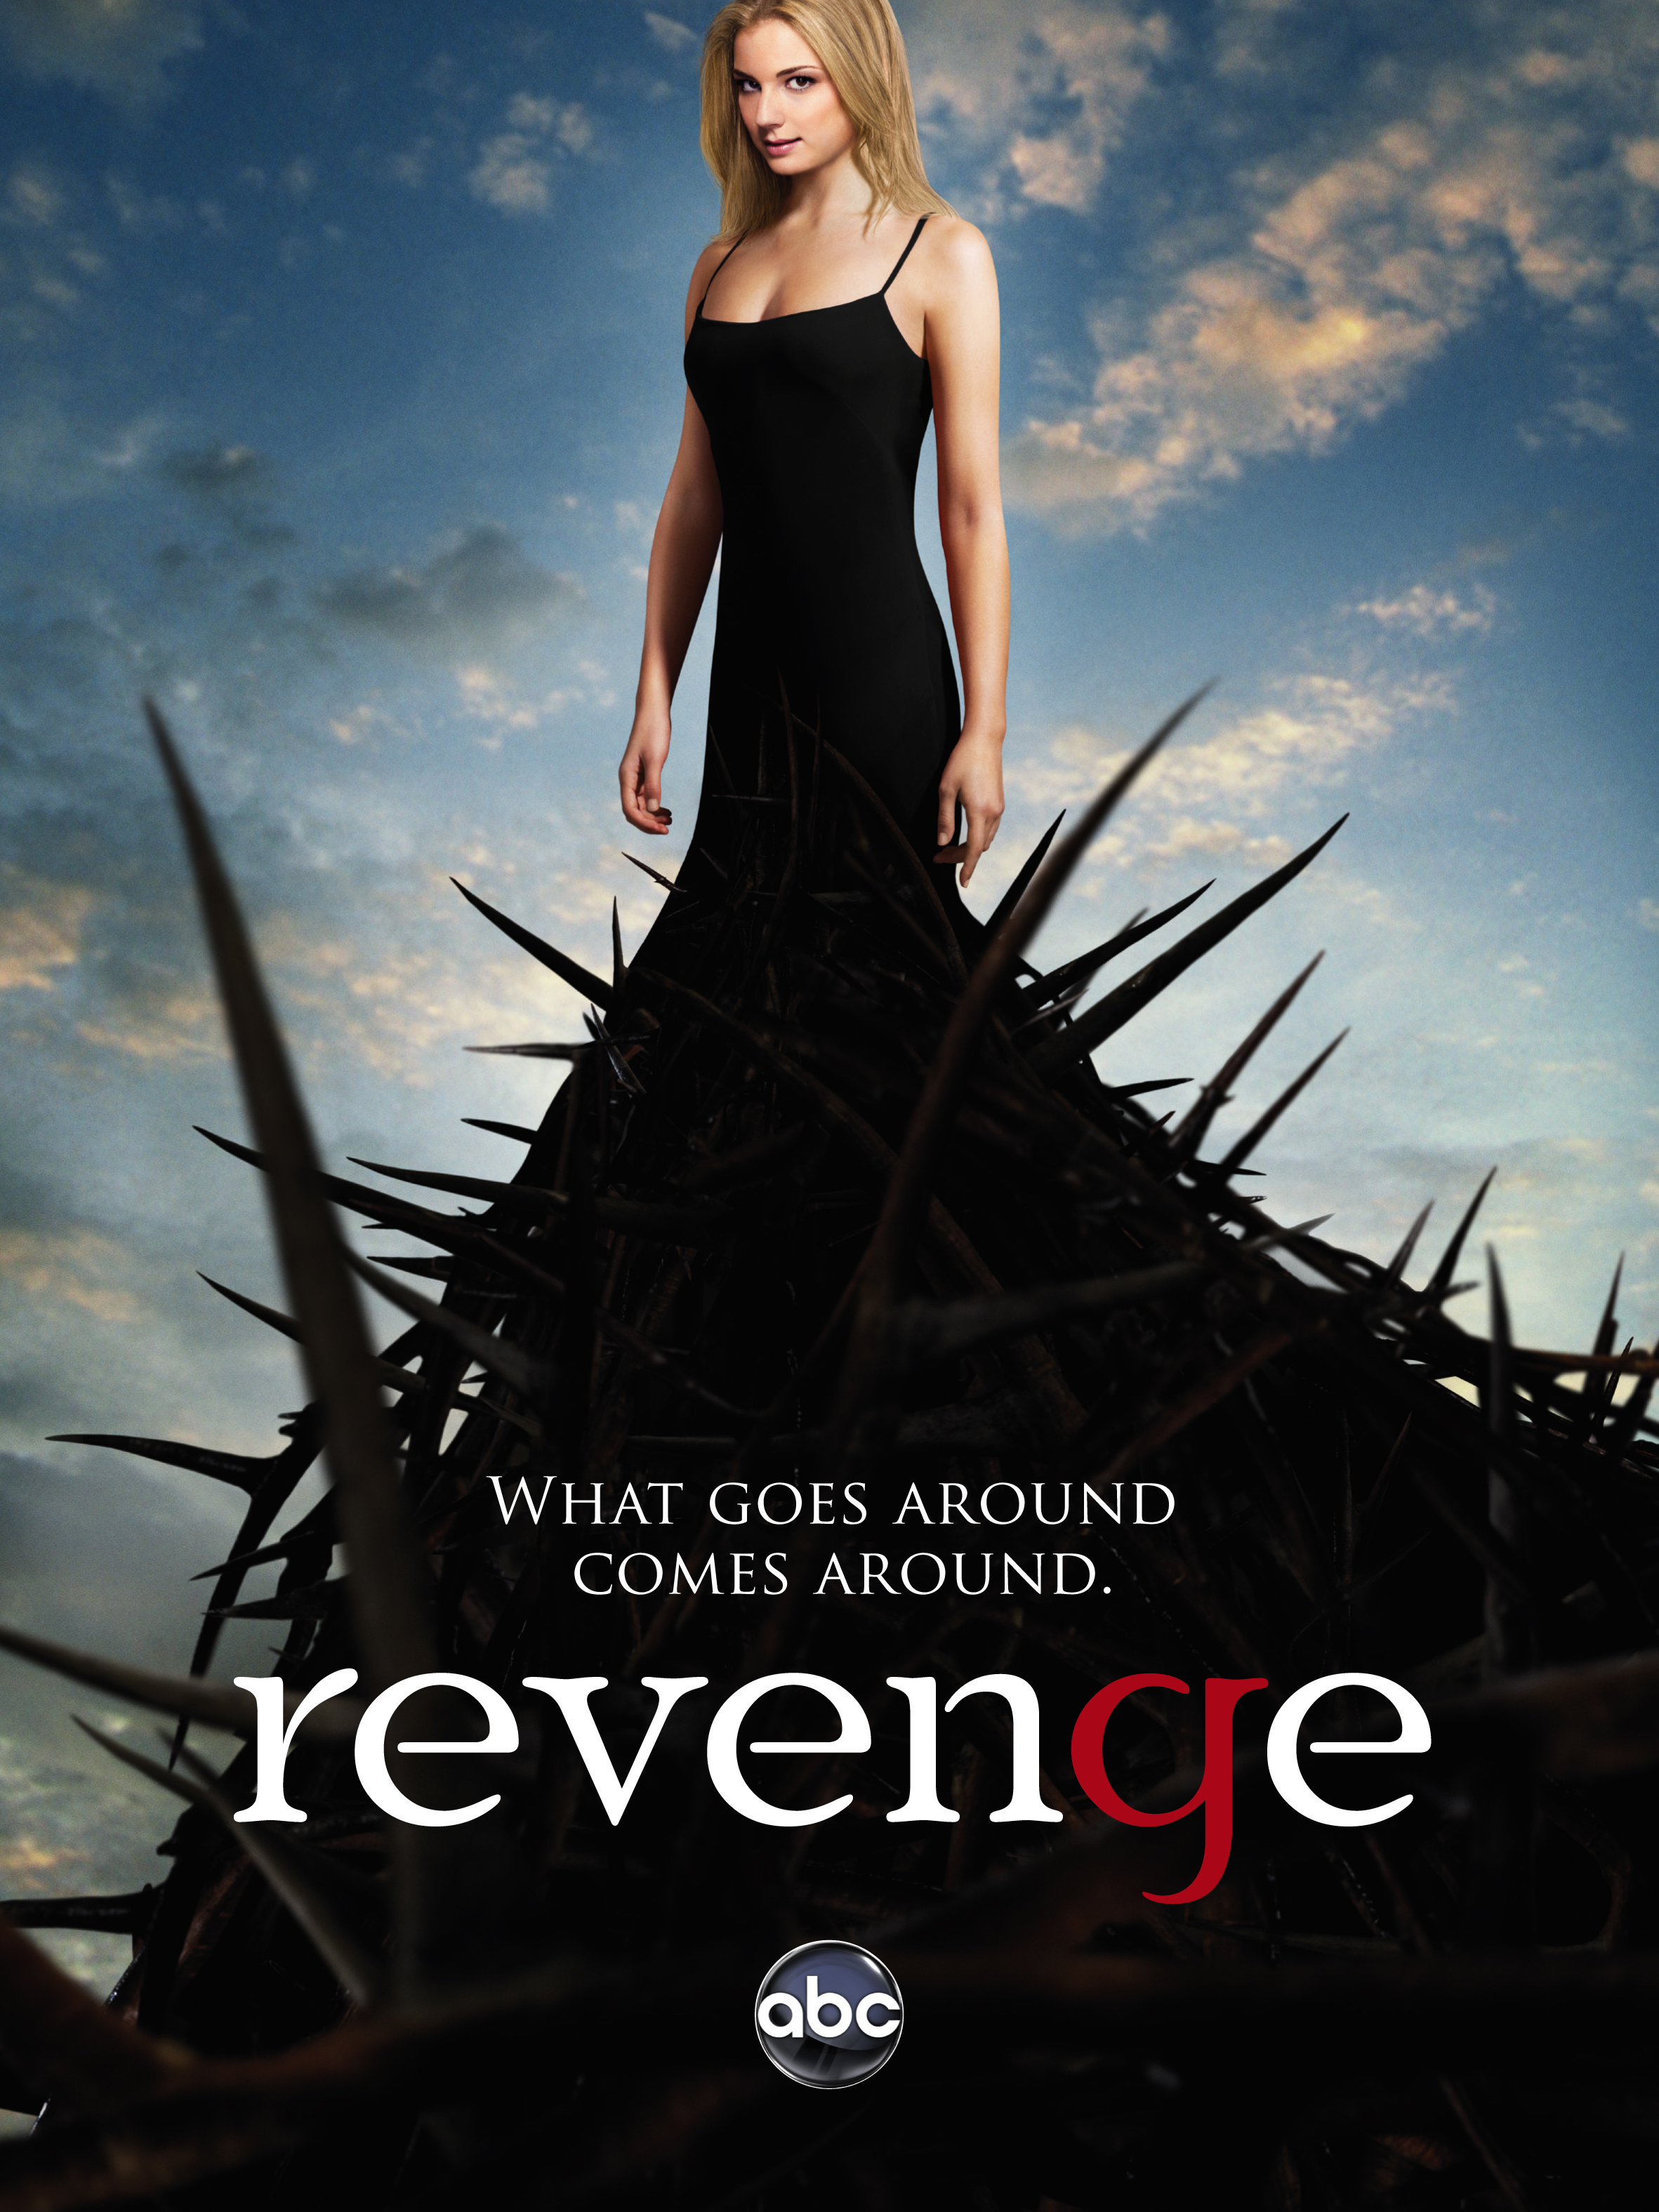 Revenge saison 1 épisode 22 streaming dans Series Revenge-Promo-Poster-Season-One-ABC